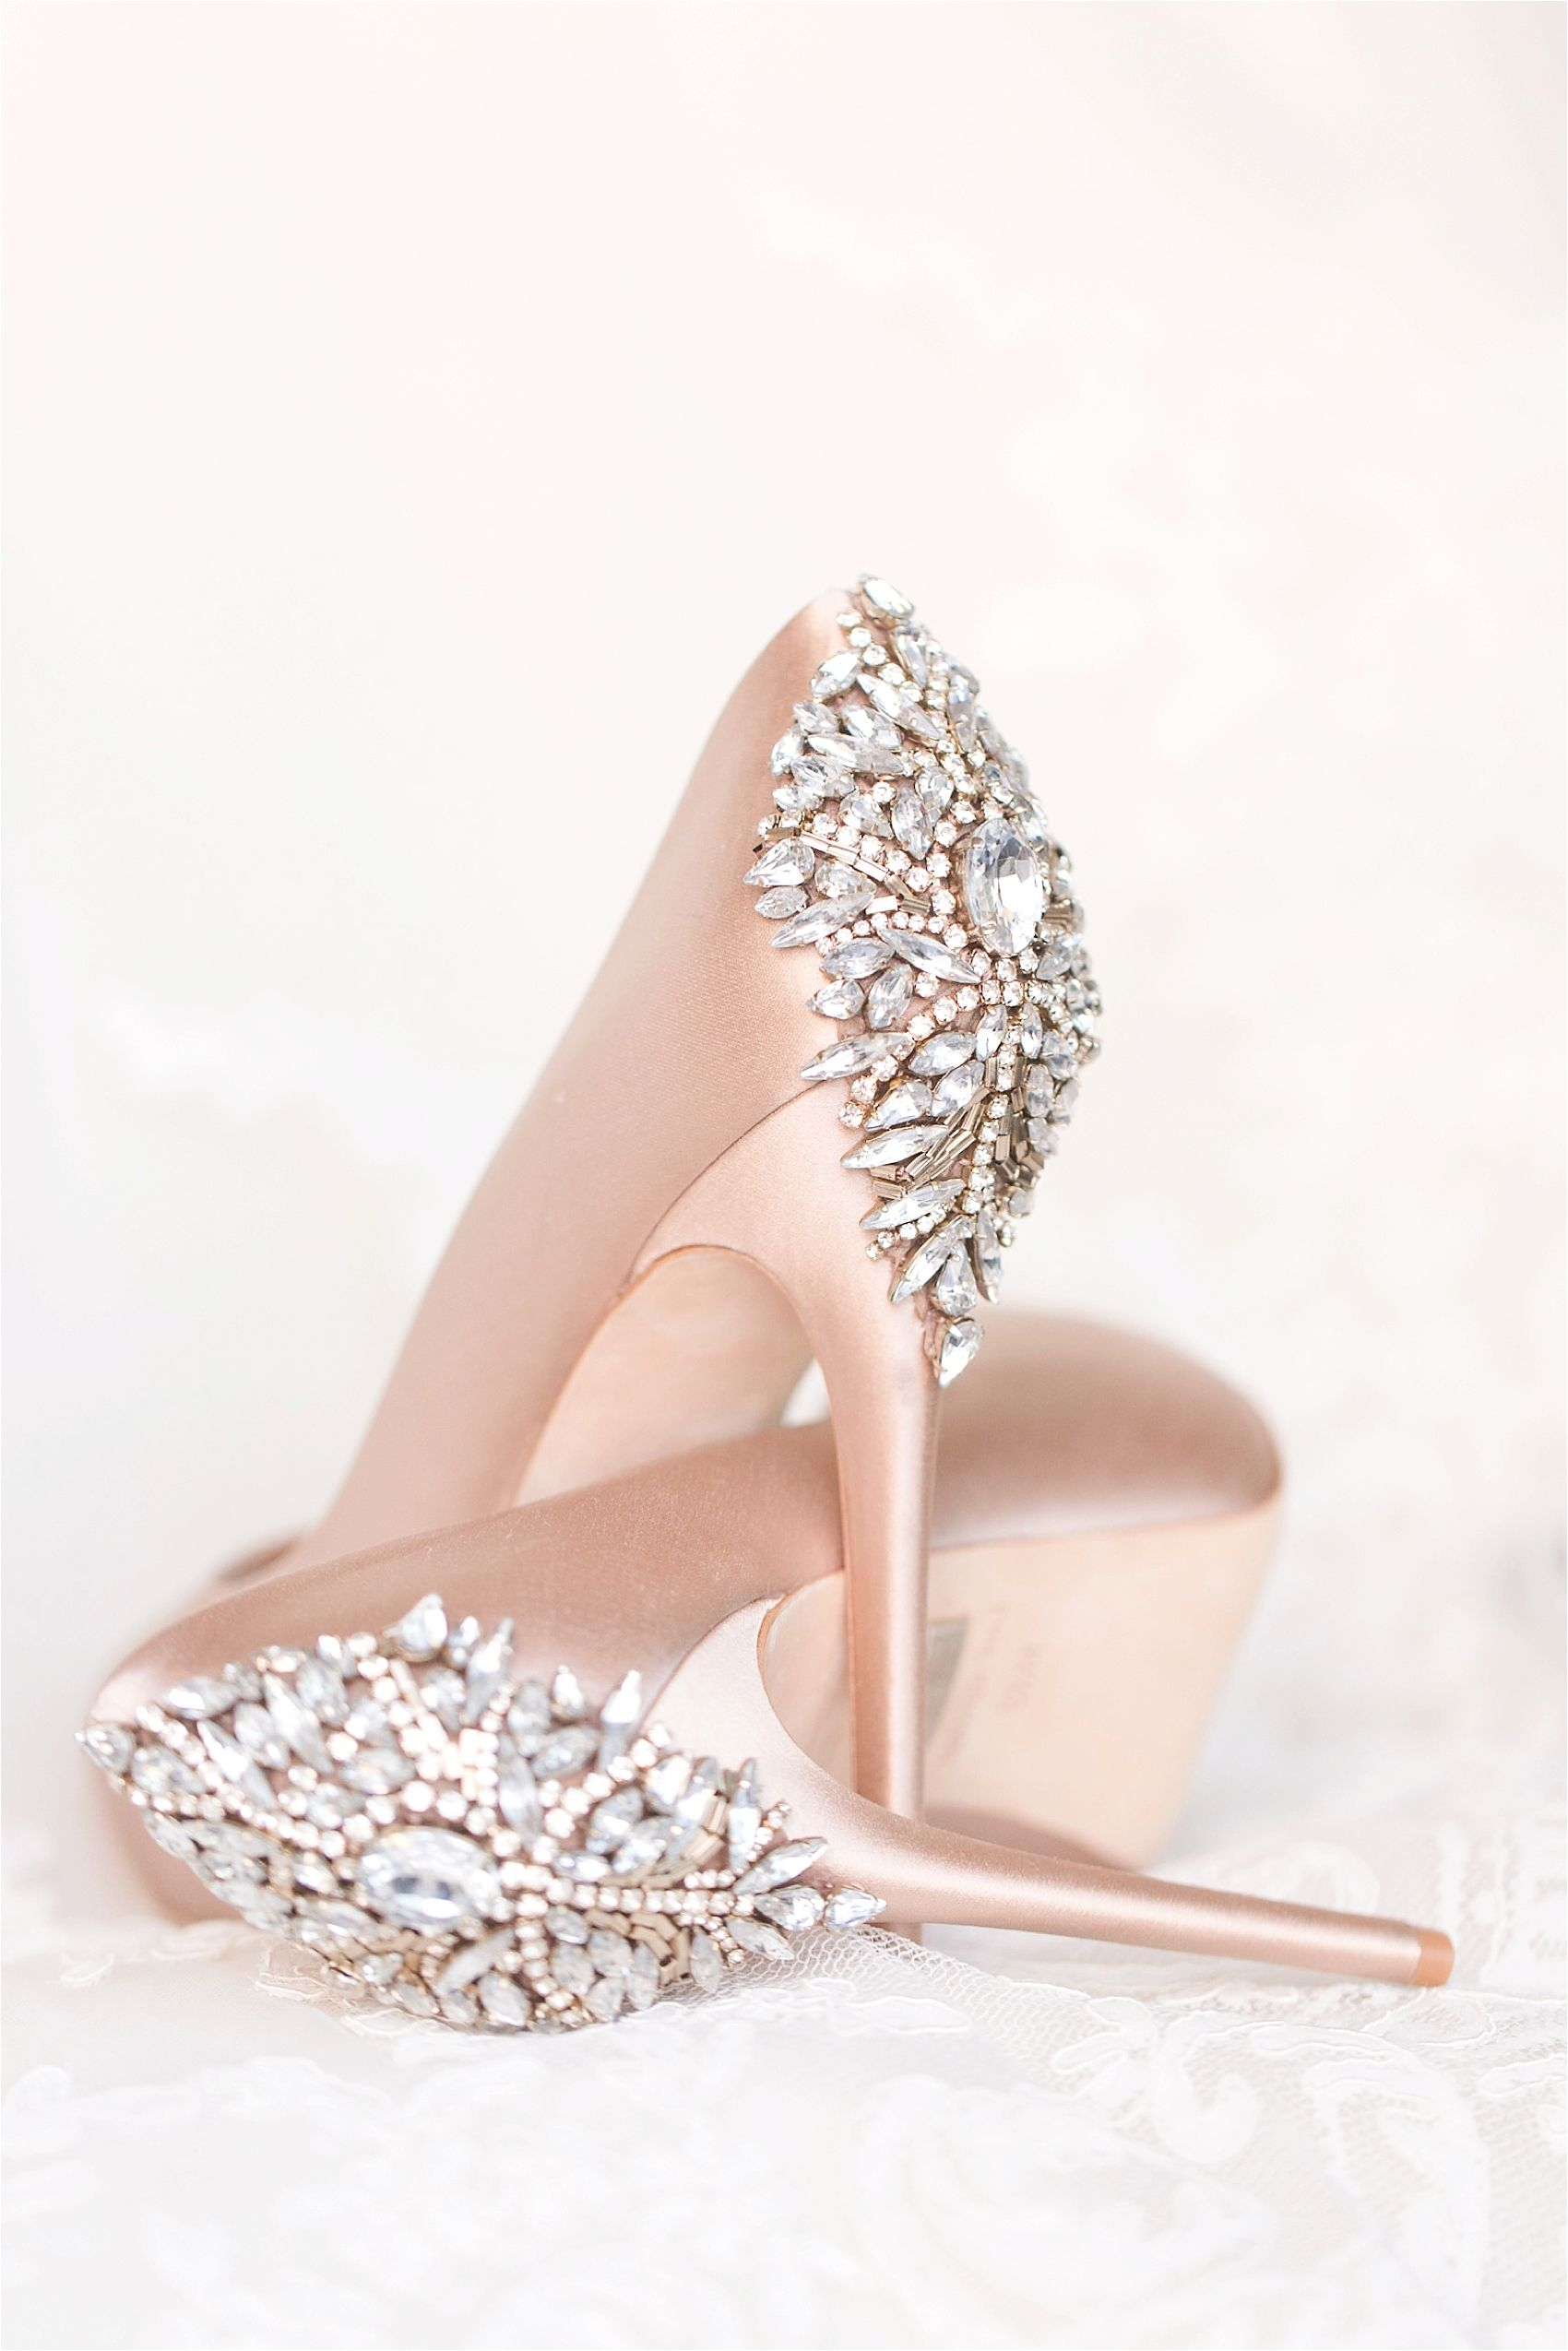 Navy And Blush El Chorro Wedding Wedding Pinterest Schuhe